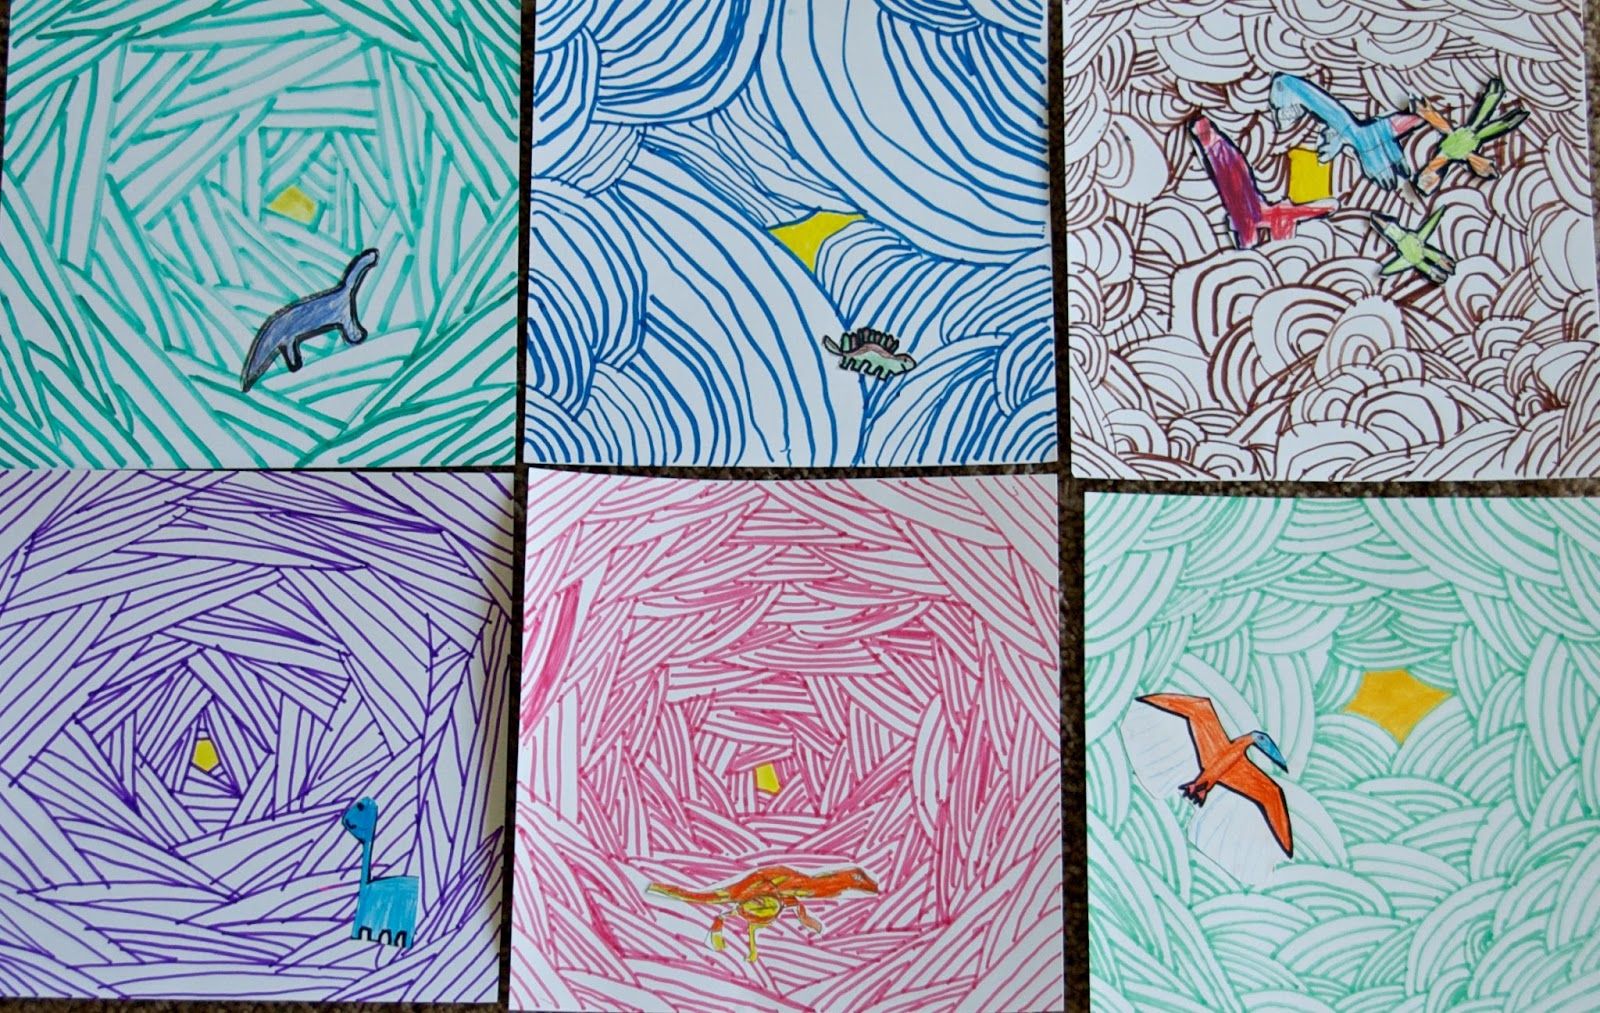 cute doodles to draw   Class Doodles by ~katmcgeer on ...  Cool Pictures To Draw For Art Class